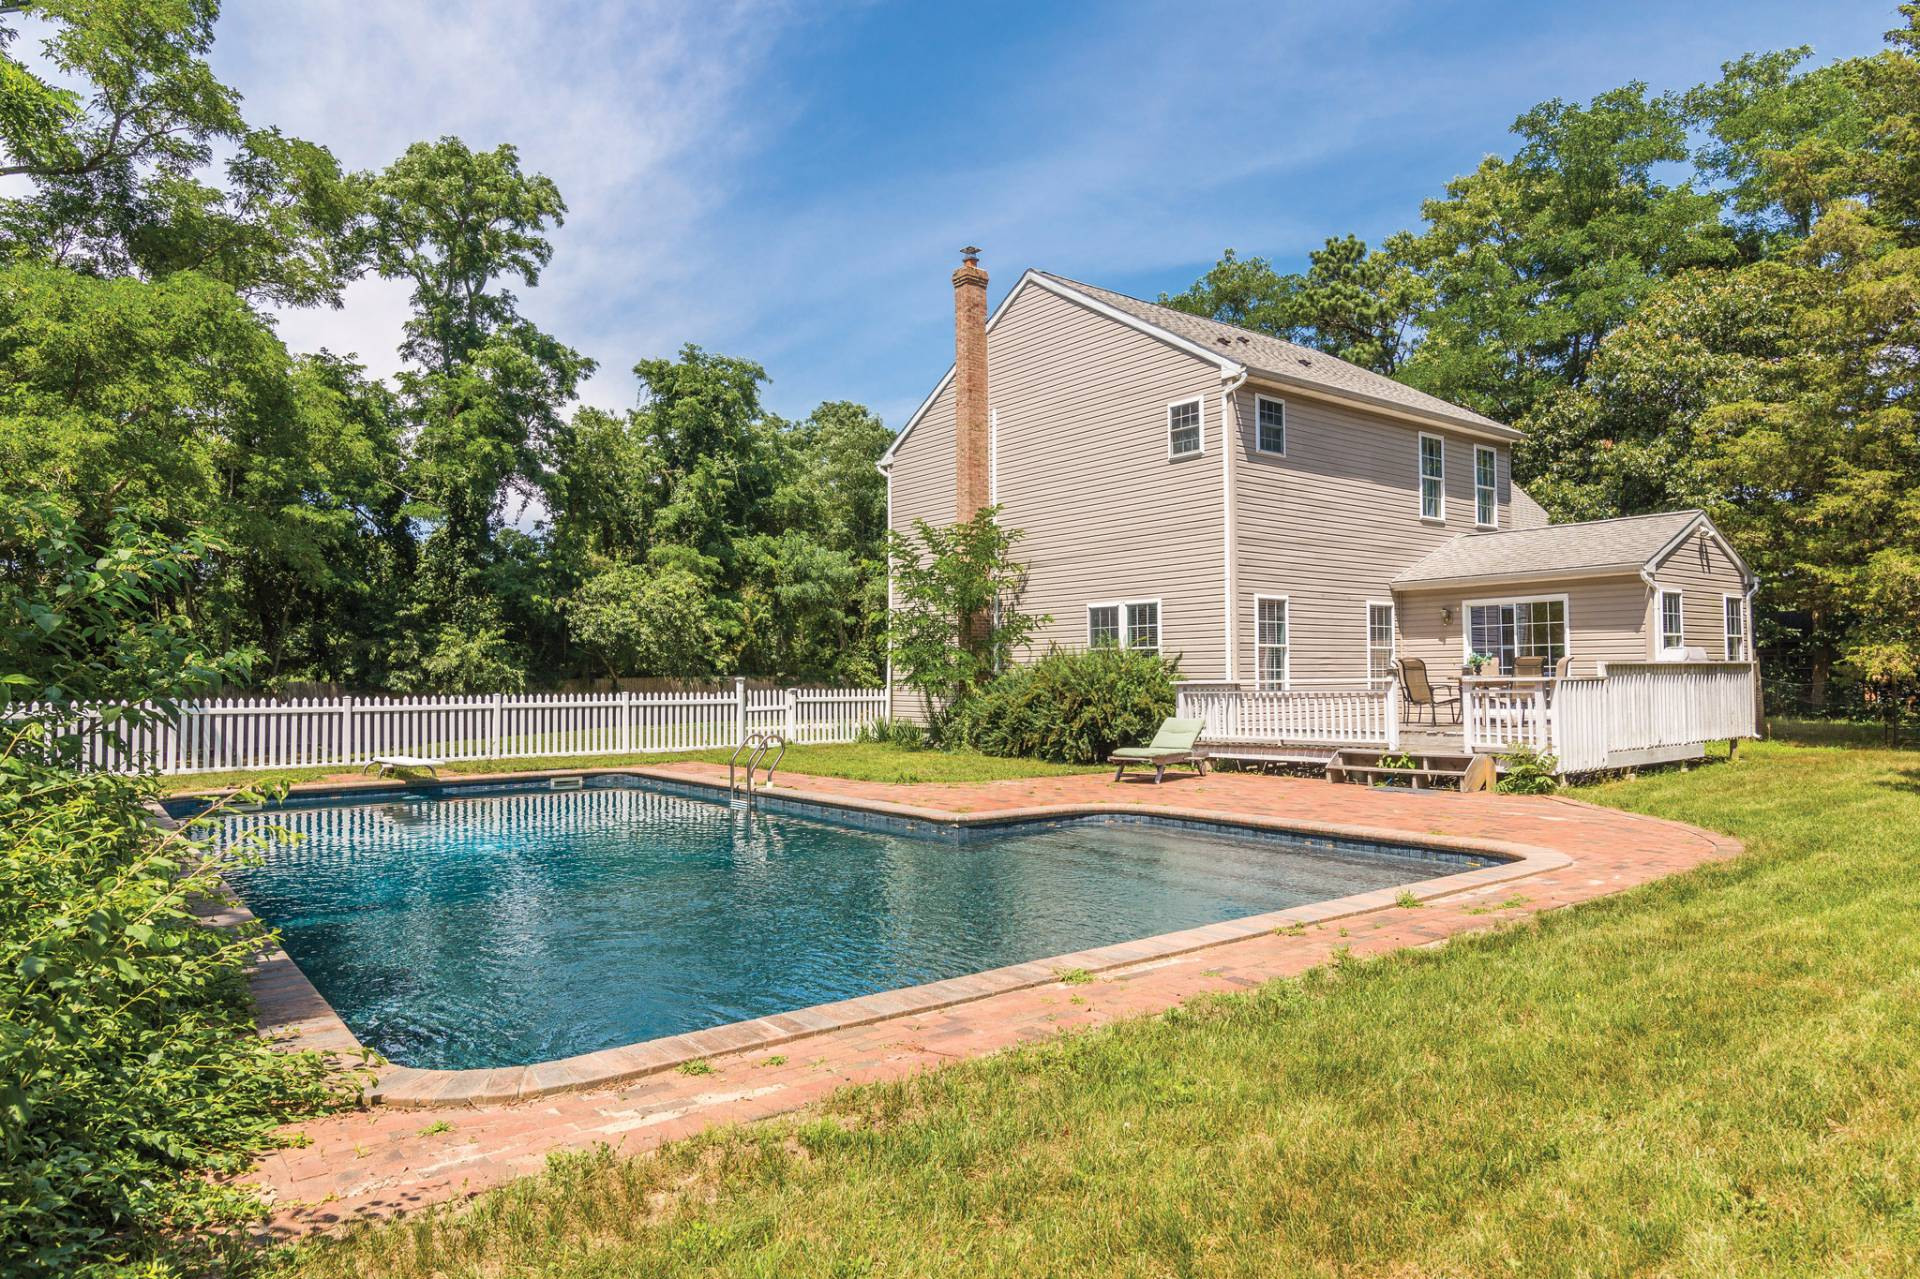 Single Family Home for Sale at Sag Harbor Fix And Flip 4056 Noyac Road, Sag Harbor, New York